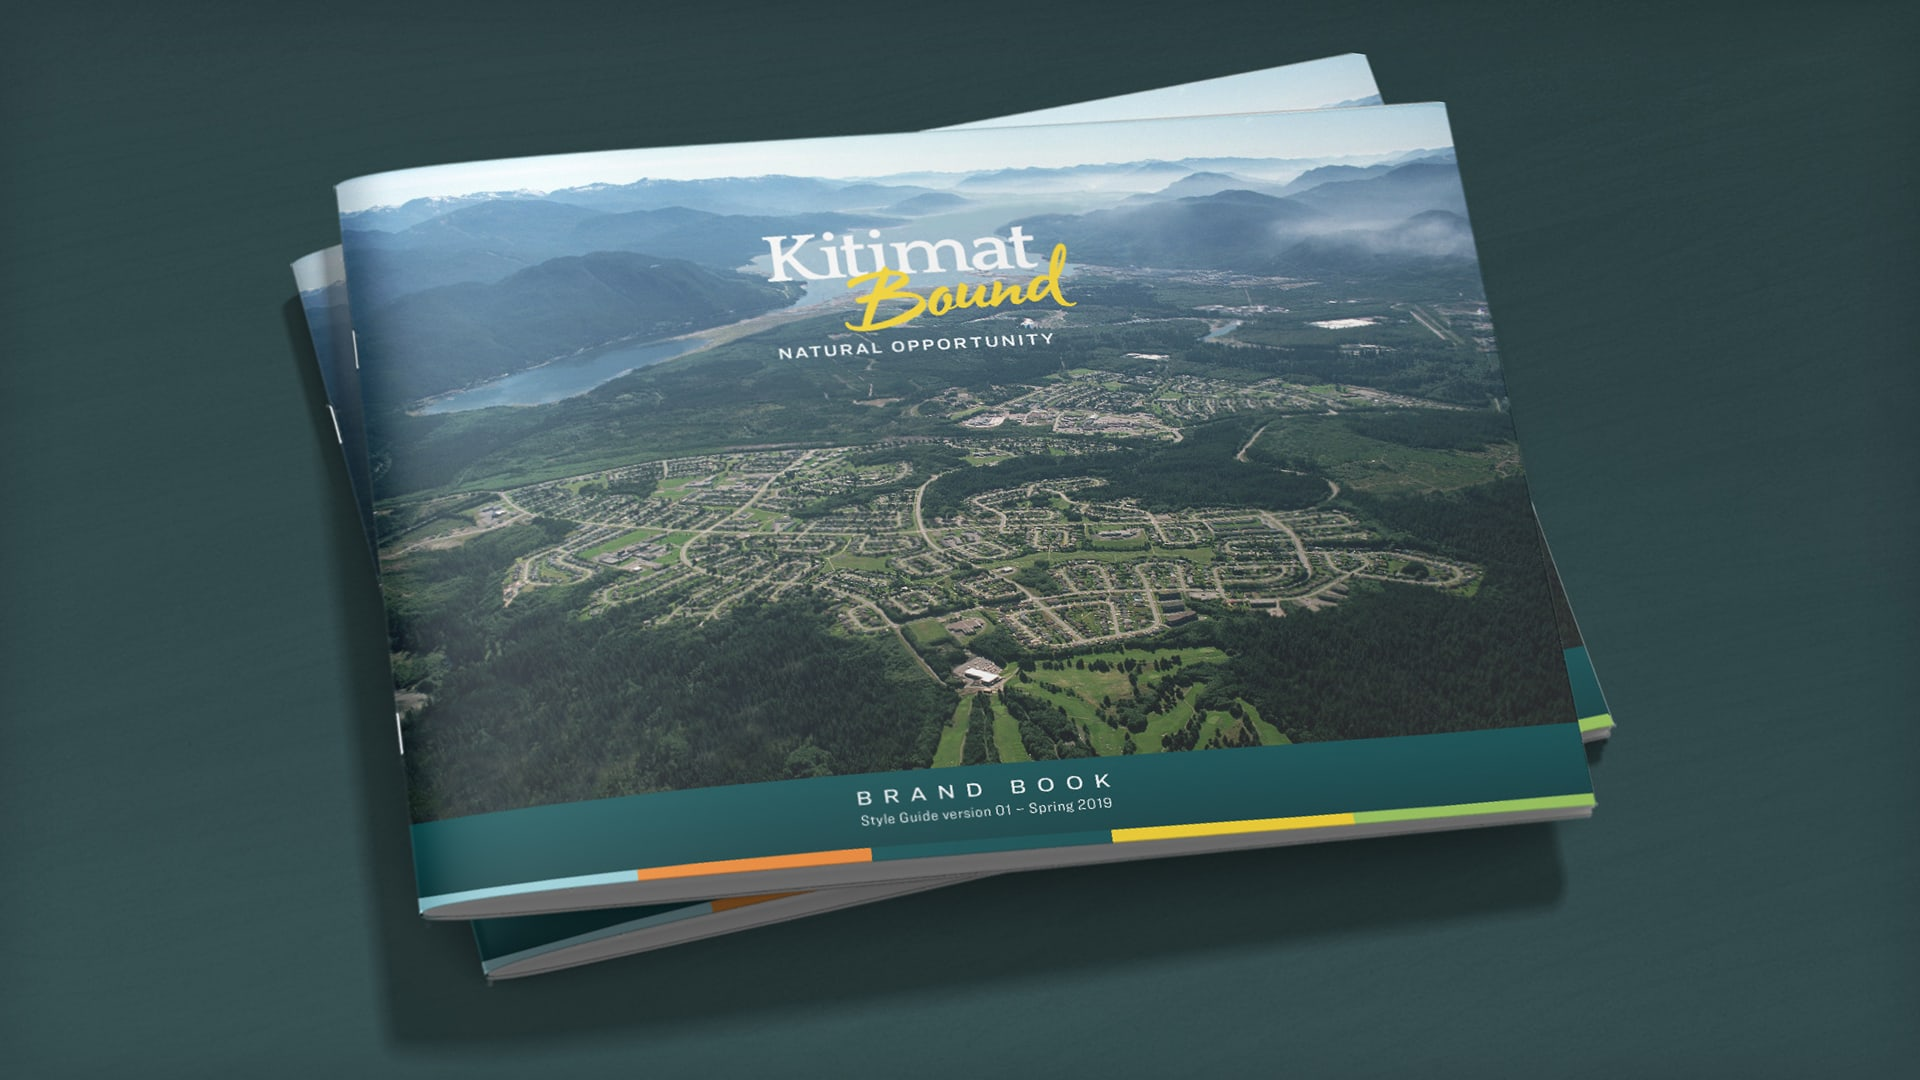 District of Kitimat - Kitimat Bound brand book covers